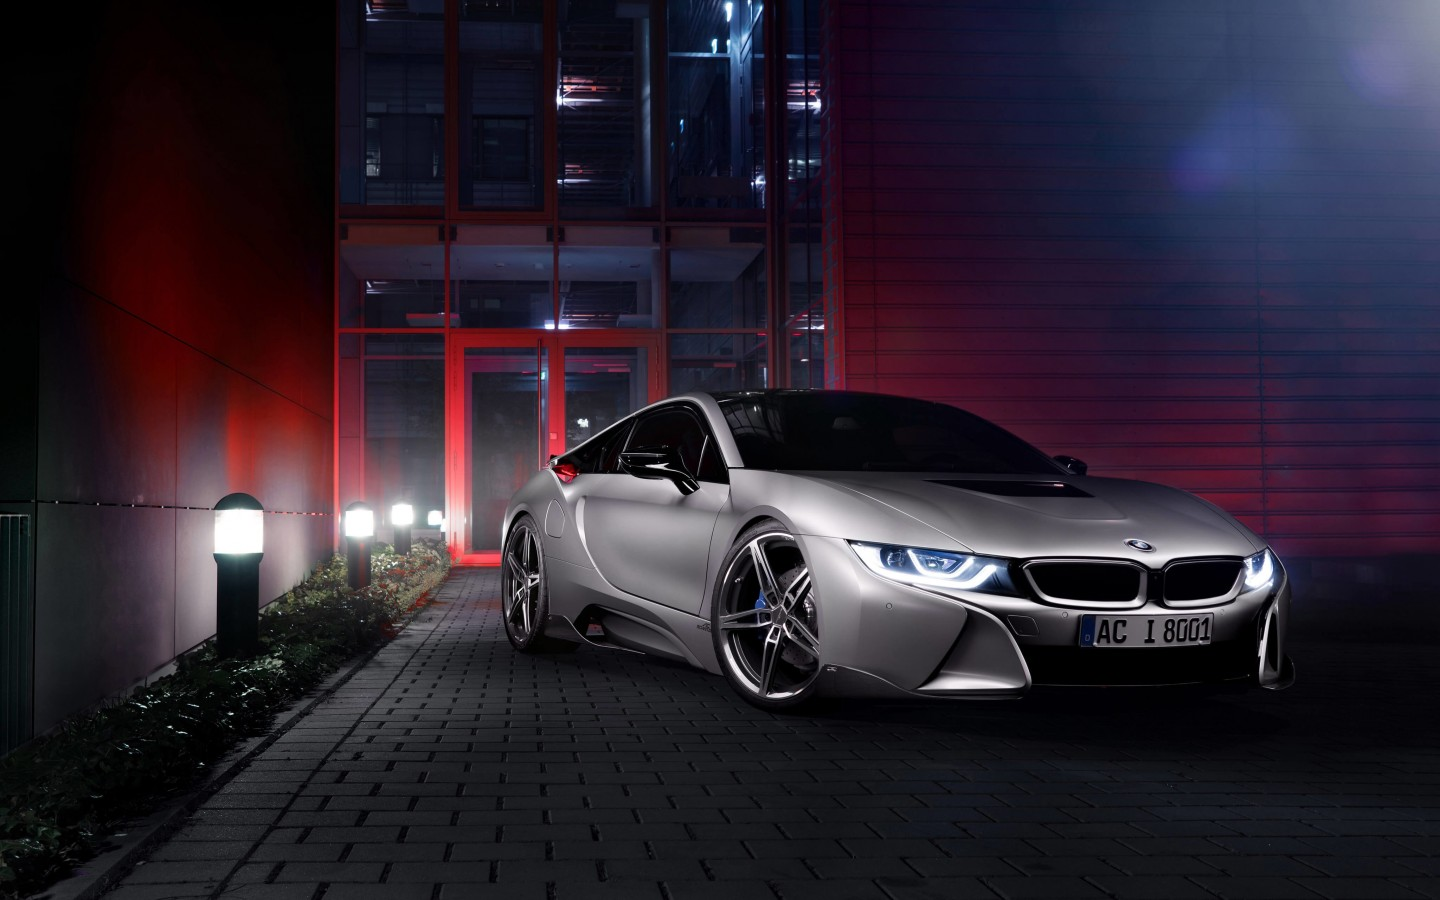 BMW i8 designed by AC Schnitzer Wallpaper for Desktop 1440x900